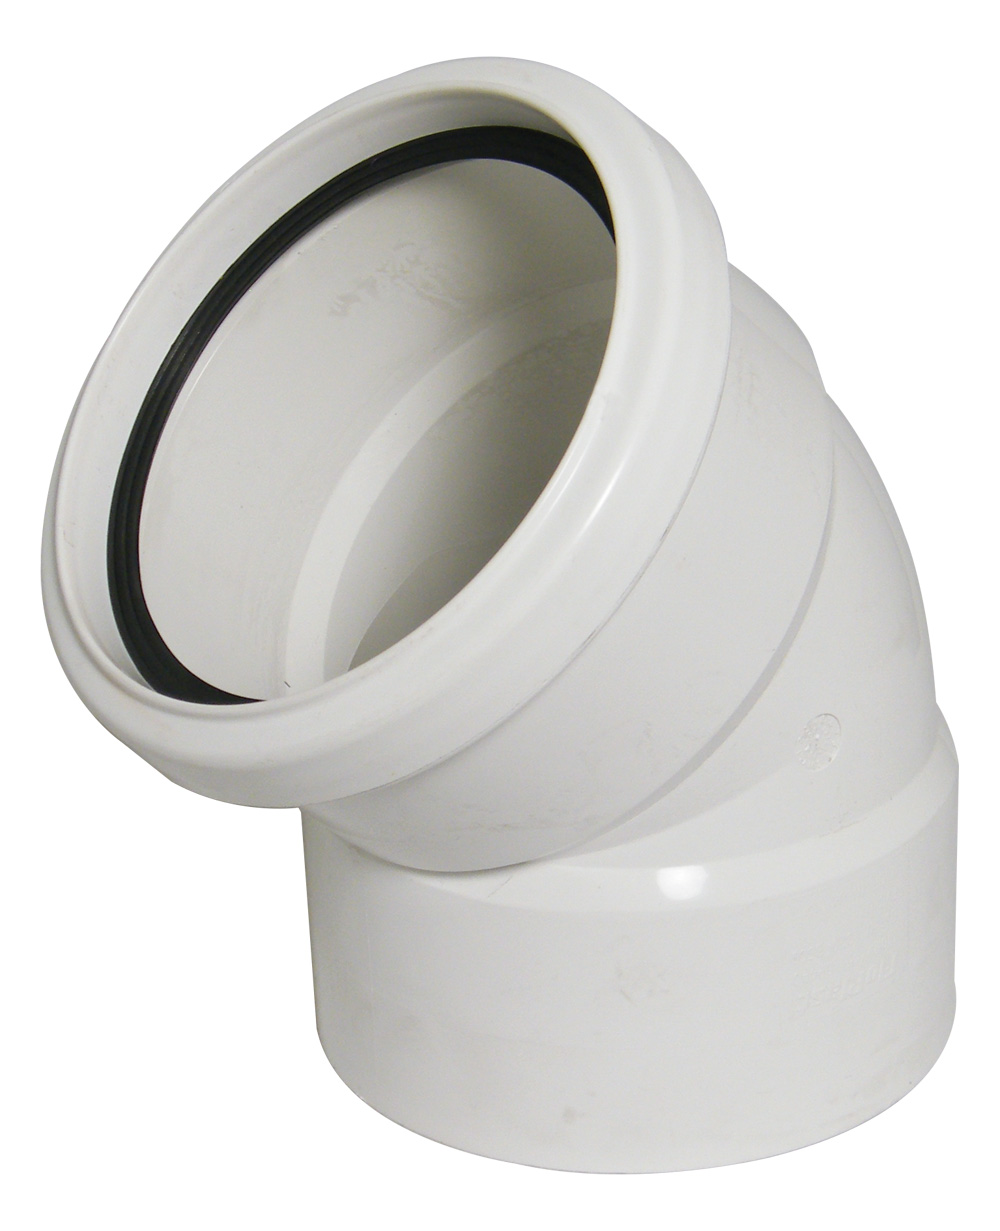 FLOPLAST SP440WH 110MM RING SEAL SOIL SYSTEM - 135* OFFSET BEND - WHITE